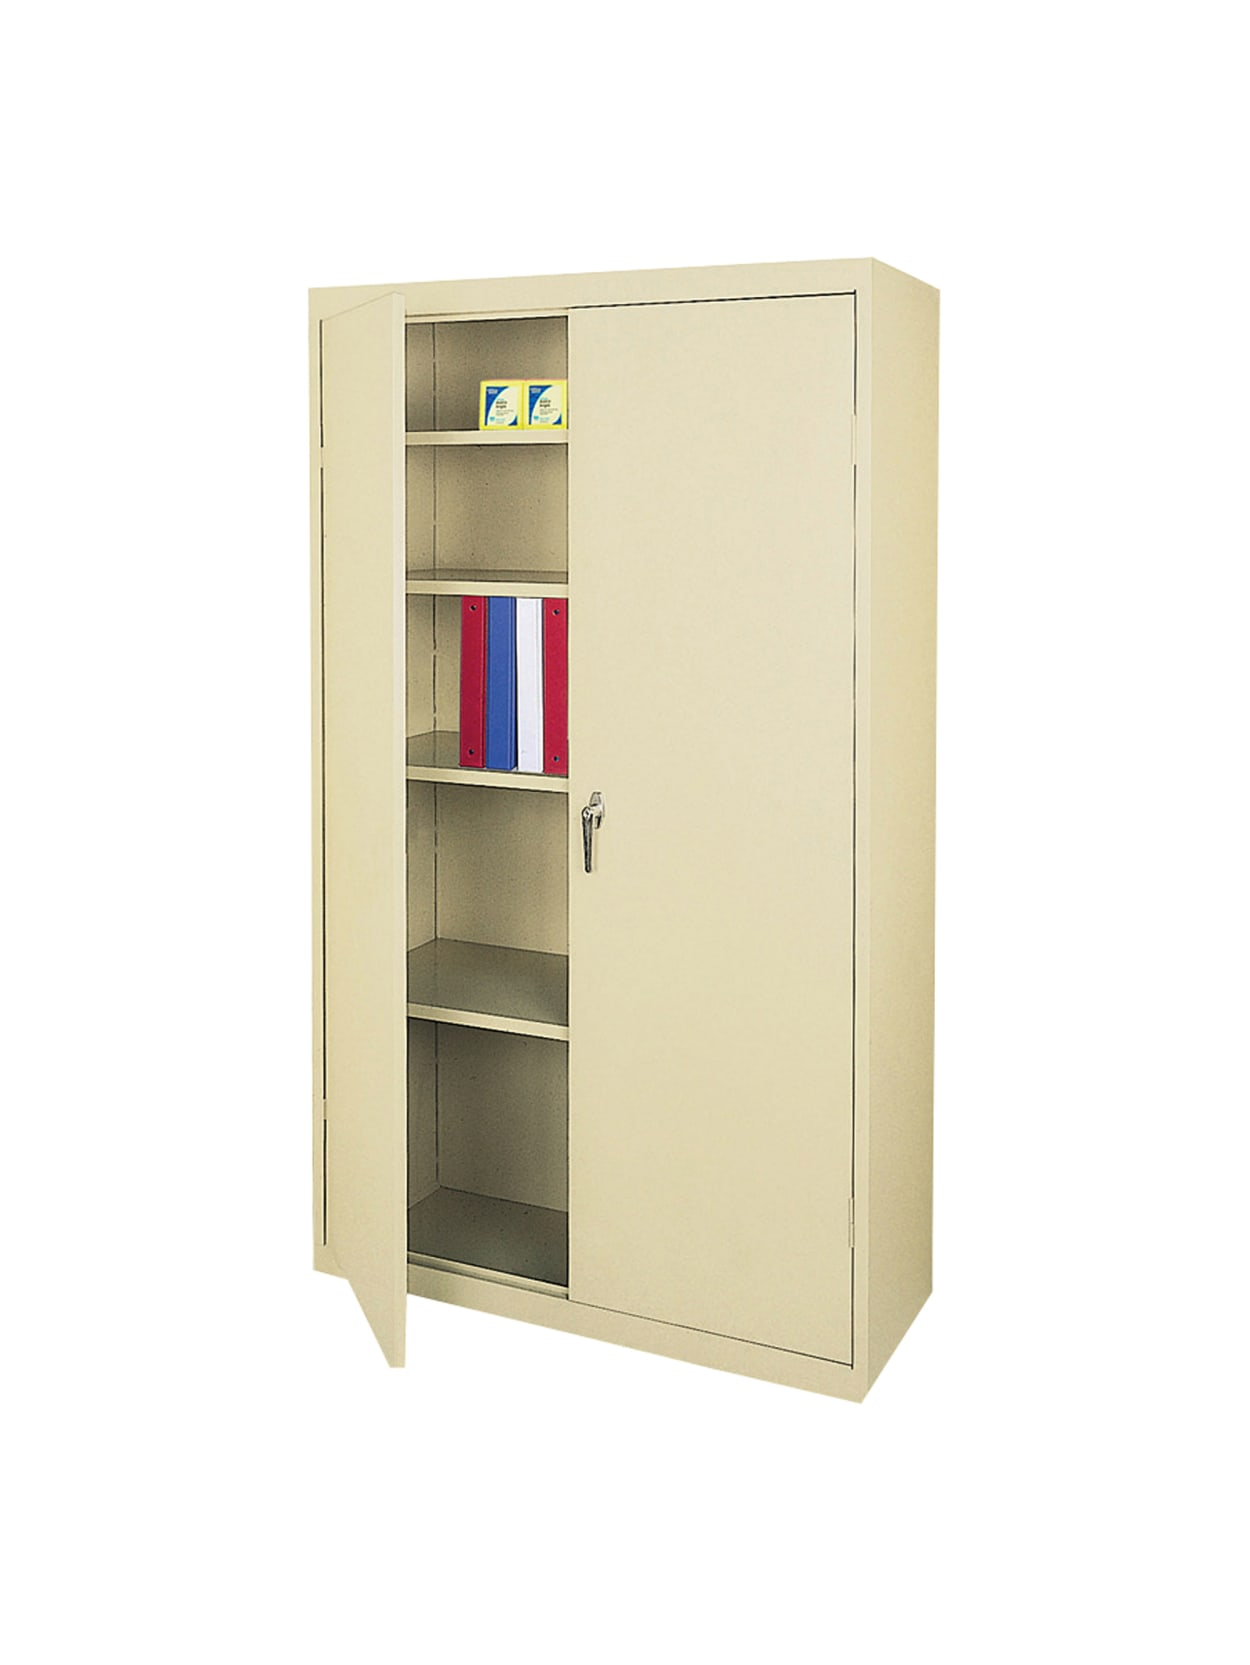 Picture of: Realspace Steel Cabinet 5 Shelves Putty Office Depot